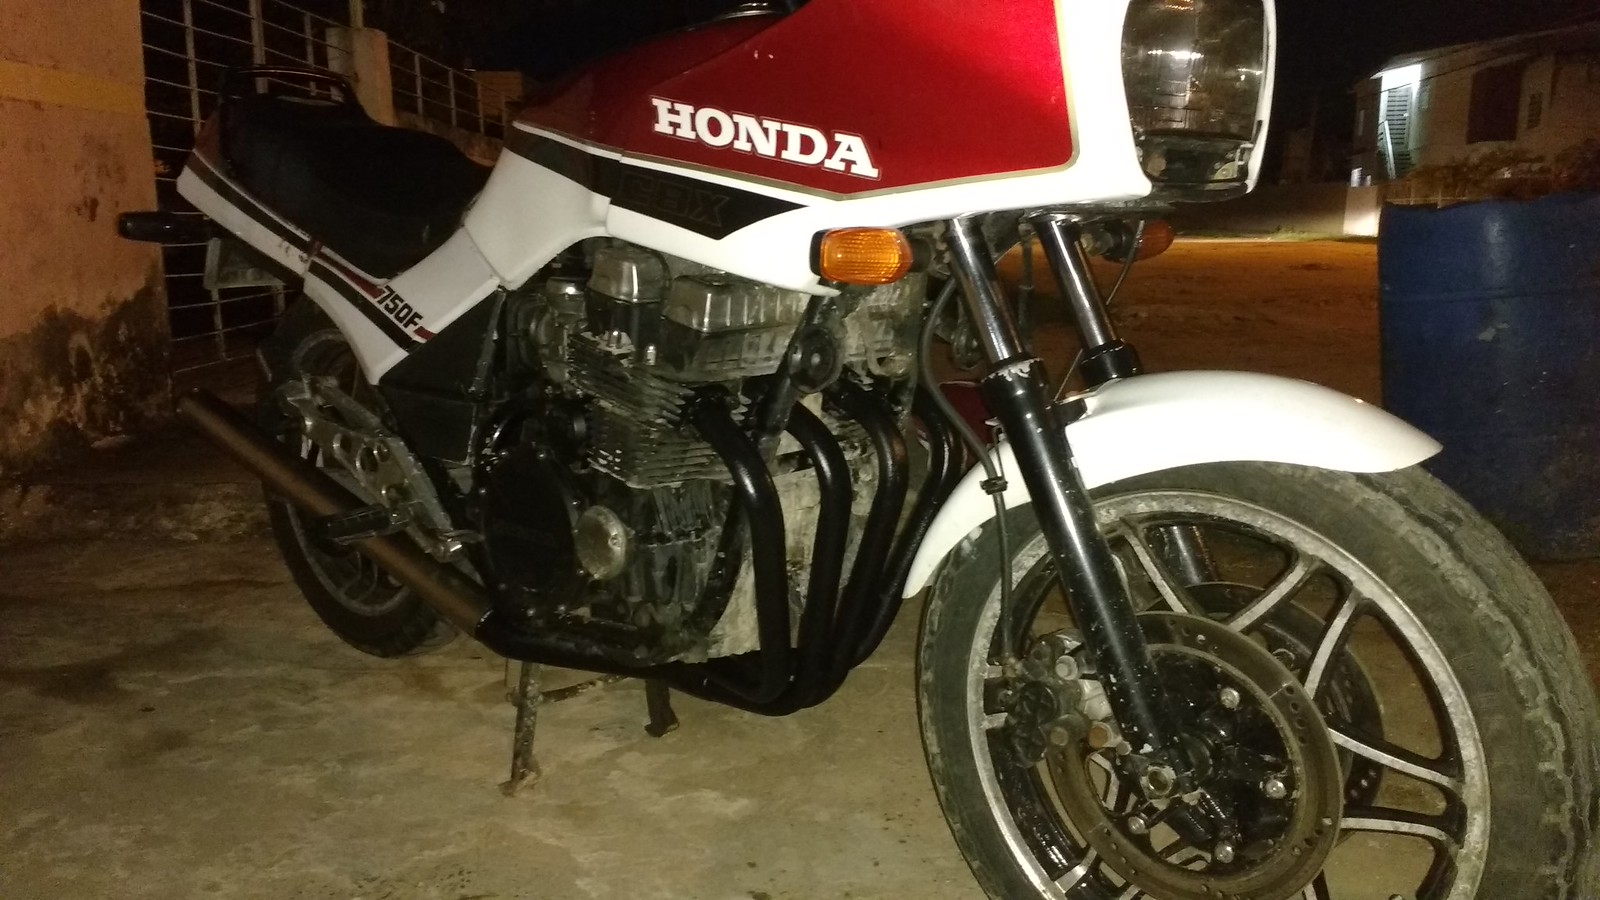 RESTAURANDO CBX 750F HOLLYWOOD - Página 15 27609026665_afc8801254_h